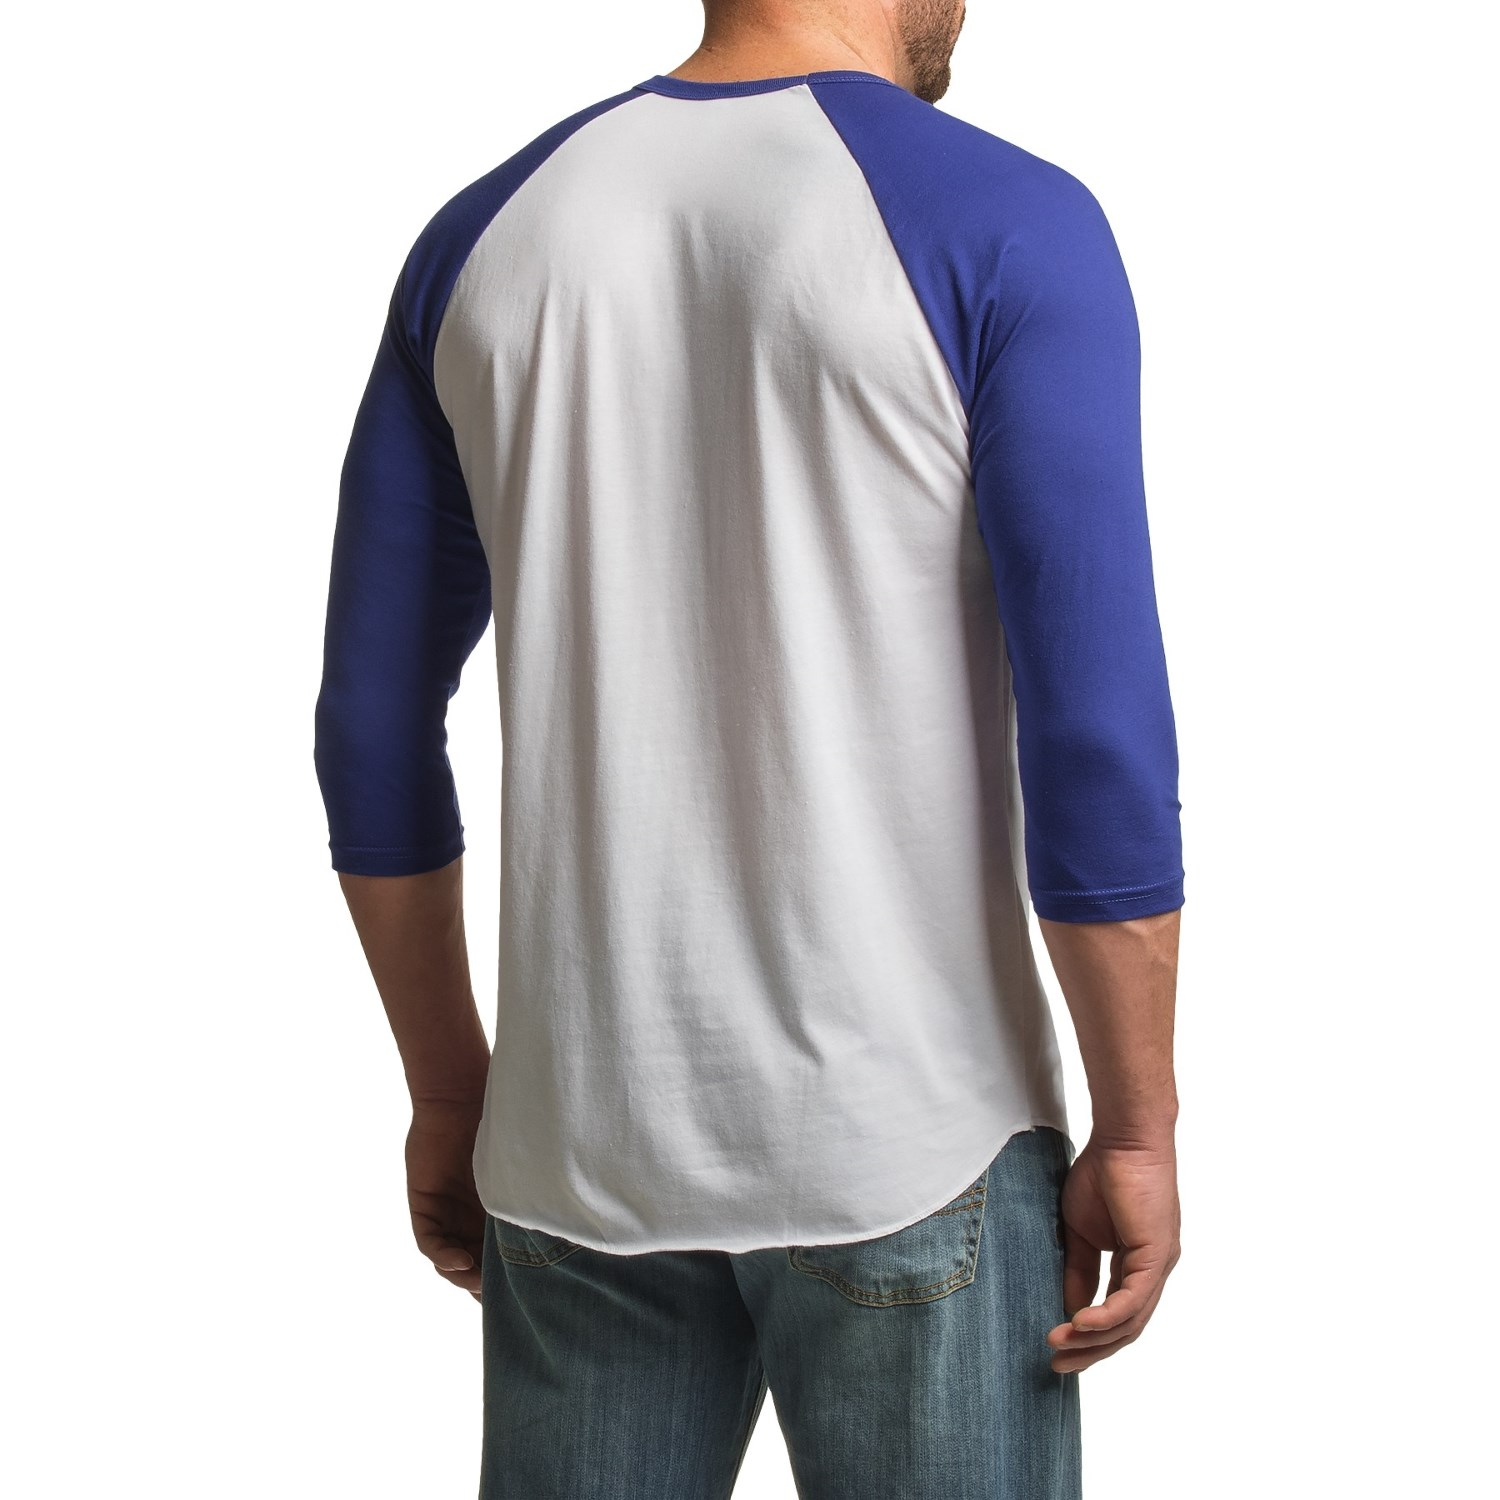 Shop for mens baseball shirt online at Target. Free shipping on purchases over $35 and save 5% every day with your Target REDcard.